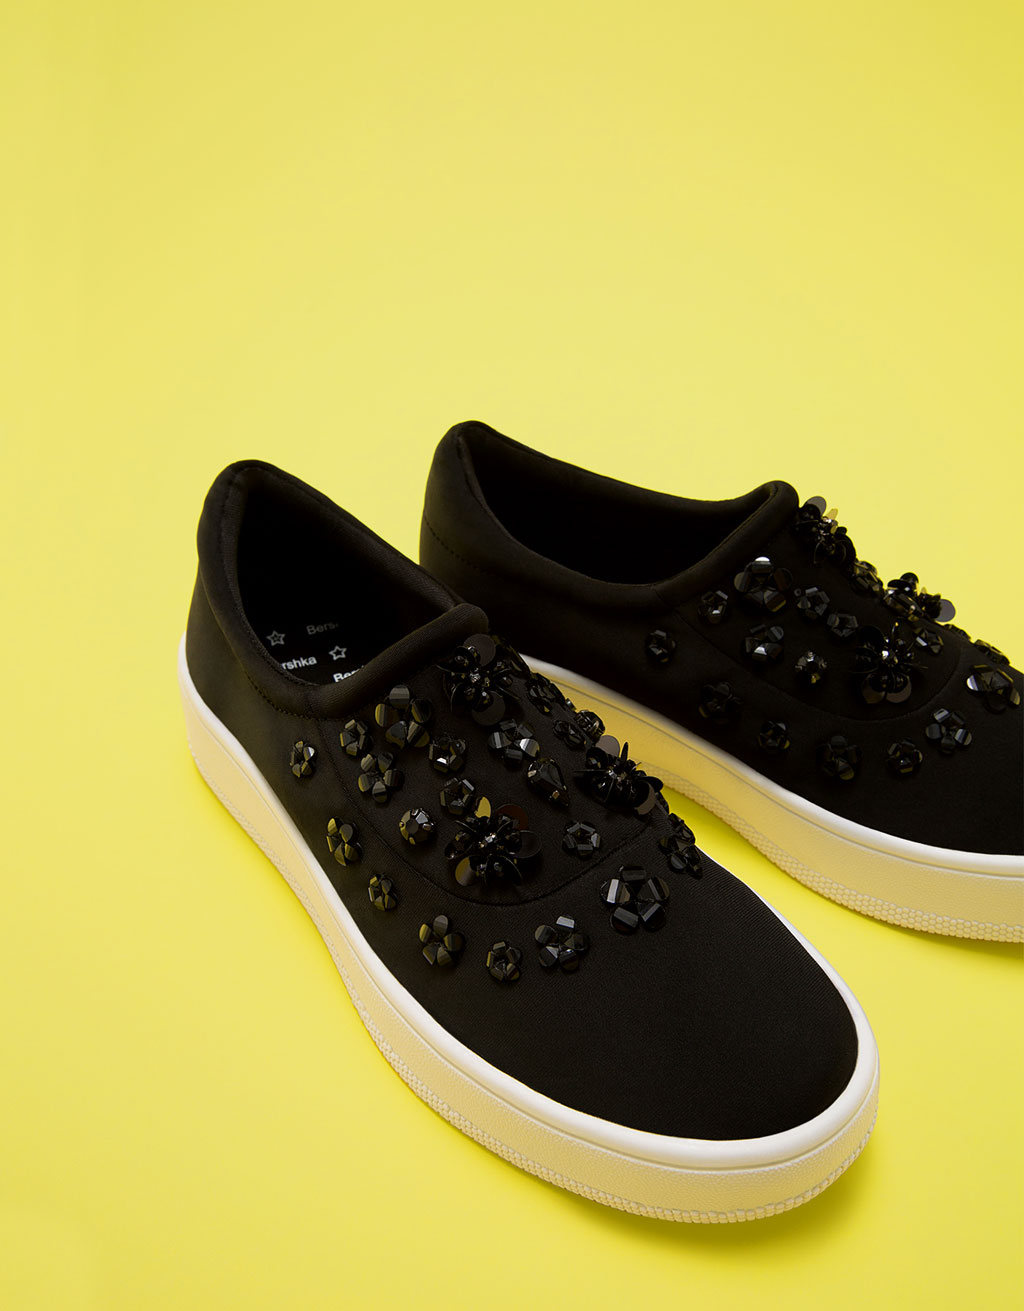 Neoprene sneakers with gems and elastic detail. No laces.